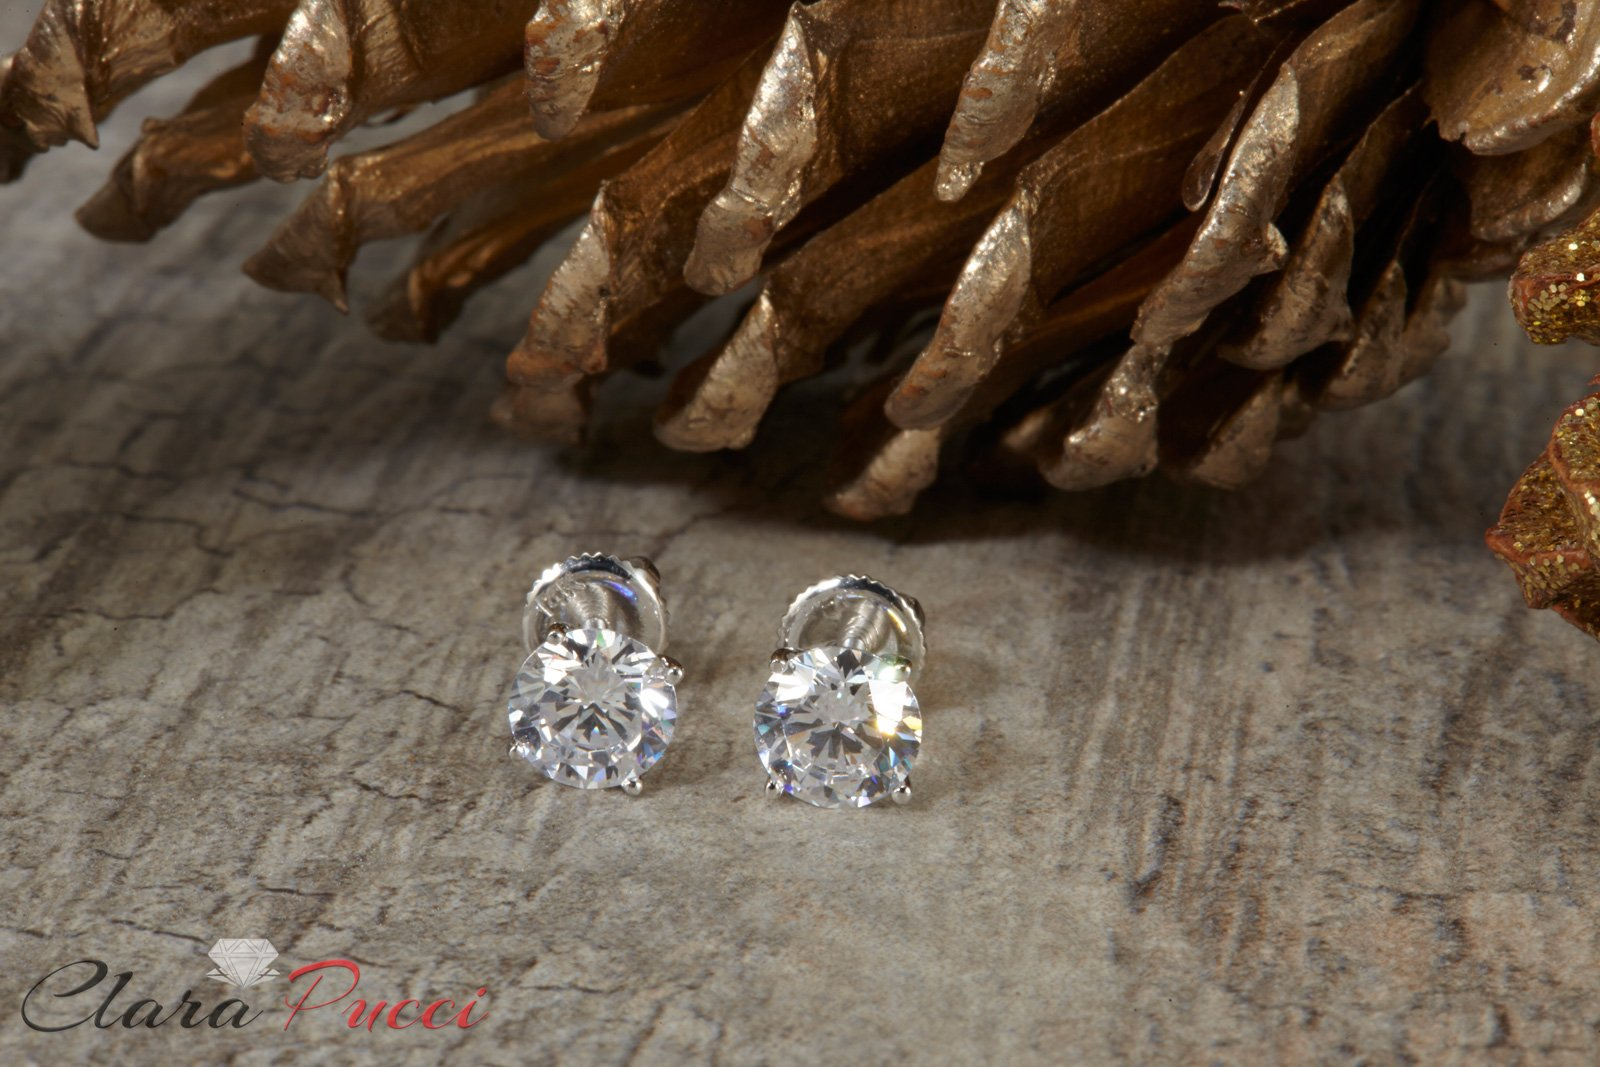 1.50 ct Brilliant Round Cut Solitaire Highest Quality Moissanite Ideal VVS1 D Anniversary gift Stud Earrings Real Solid 14k White Gold Screw Back by Clara Pucci (Image #2)